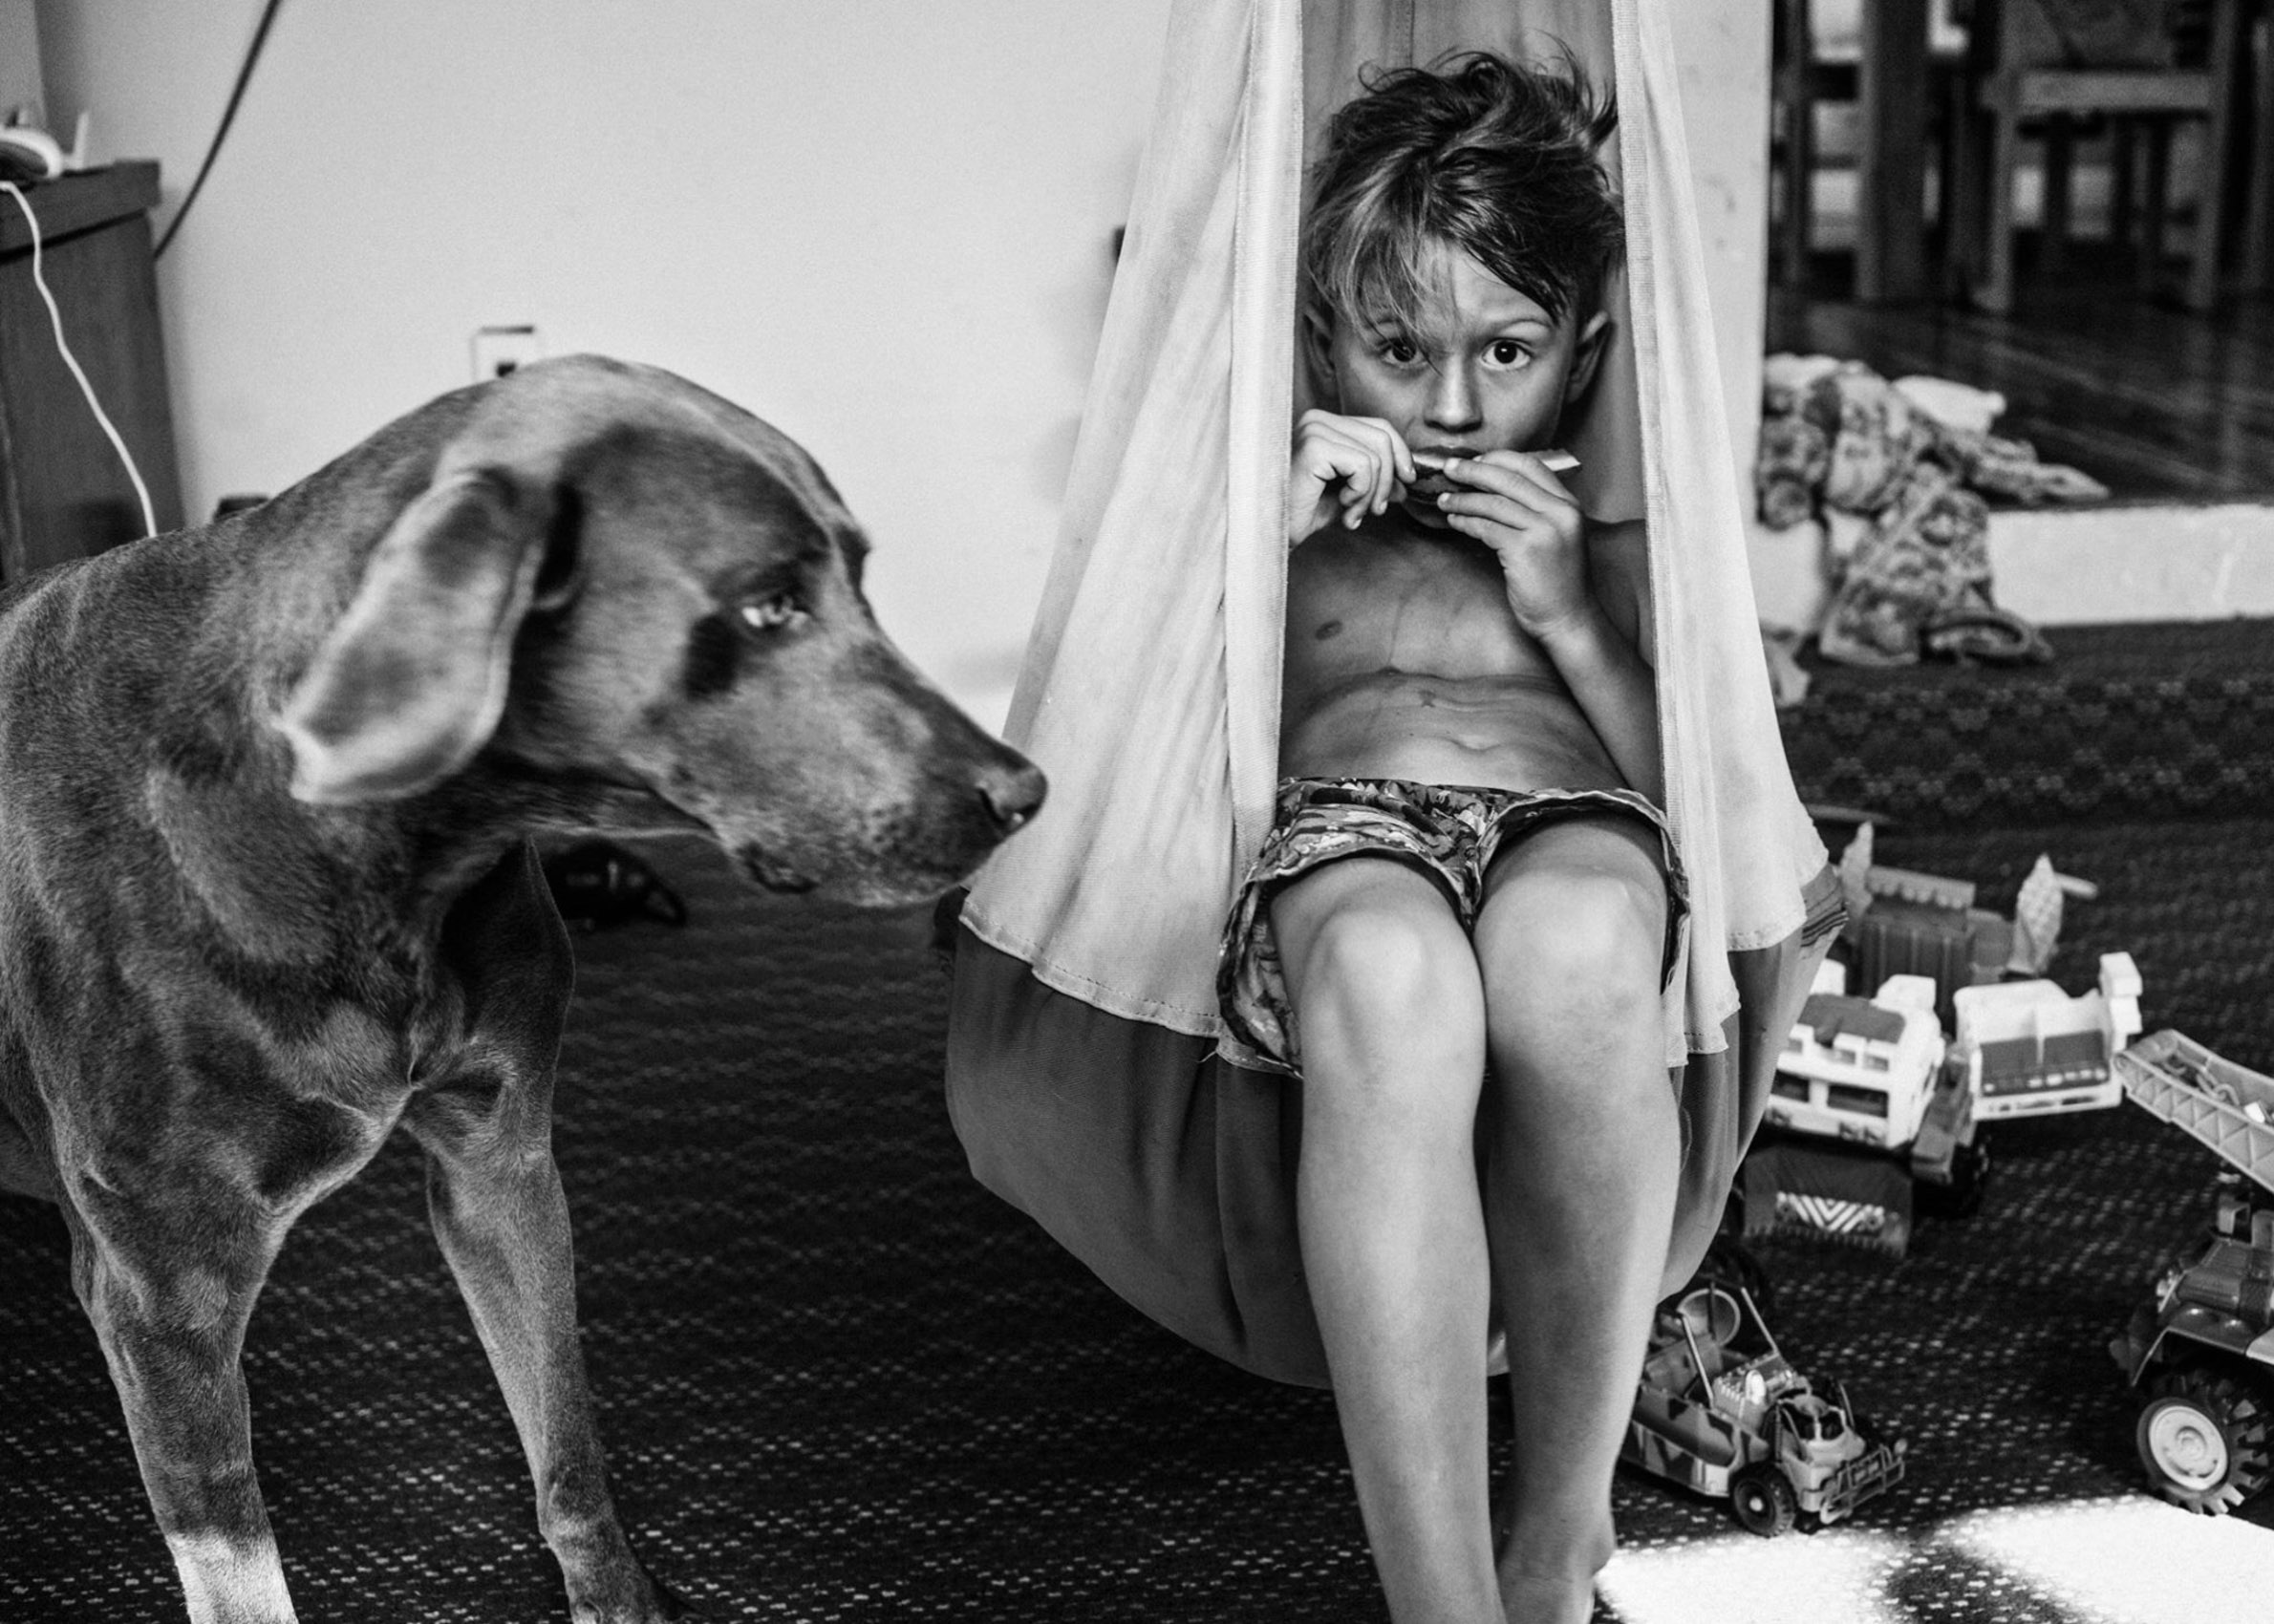 Los Angeles Street Photographer - Boy and his dog by Ray Kachatorian